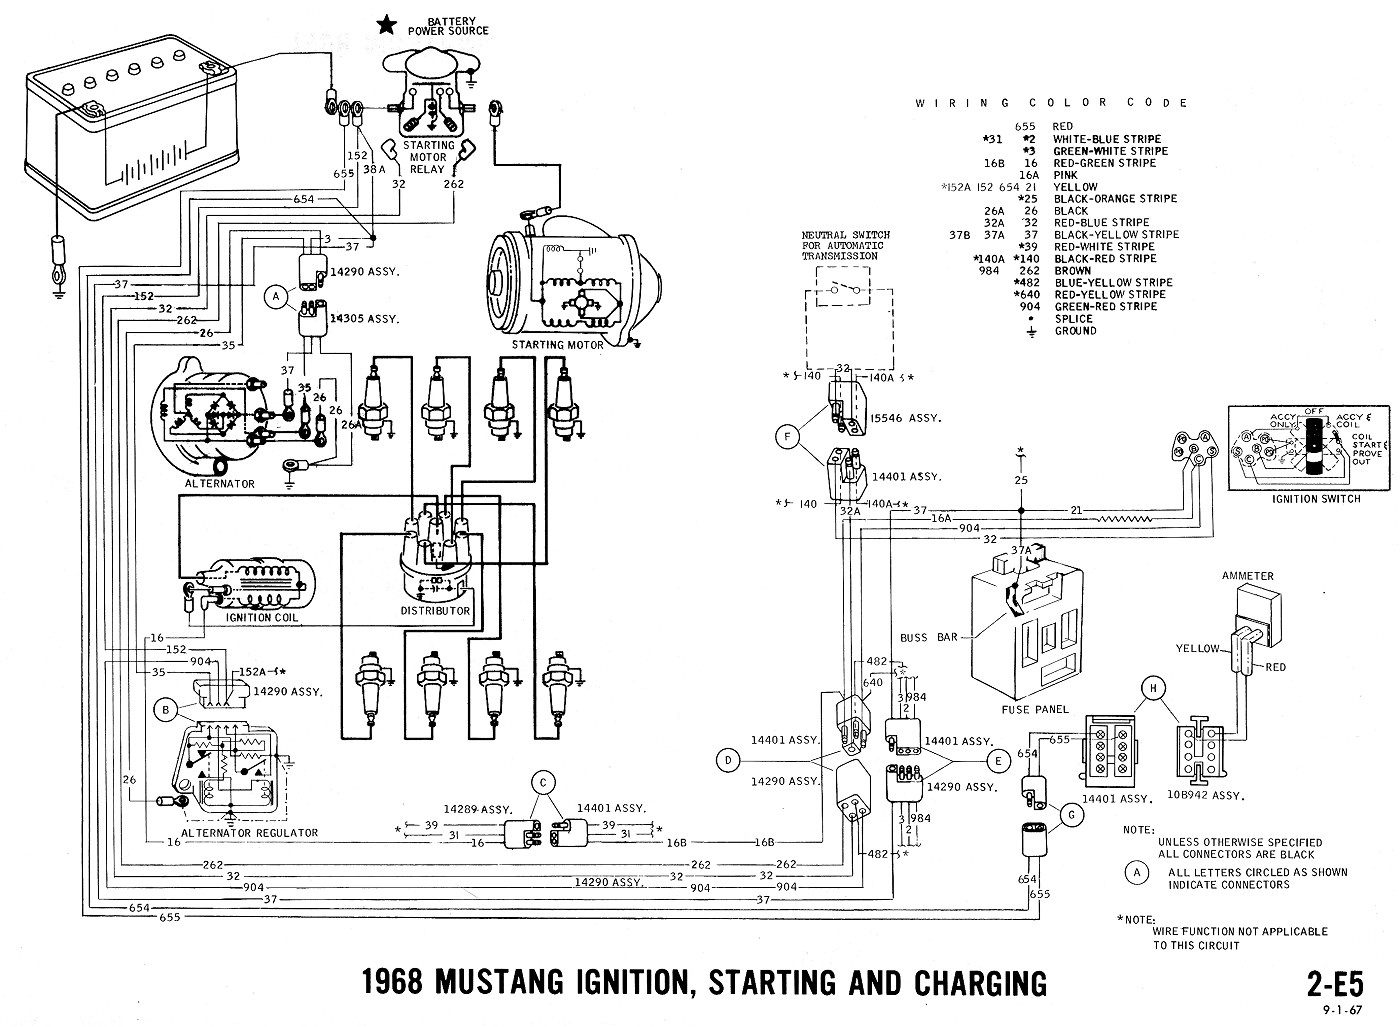 1991 Mustang Dash Wiring Diagram - Laser Wiring Diagram for Wiring Diagram  SchematicsWiring Diagram Schematics